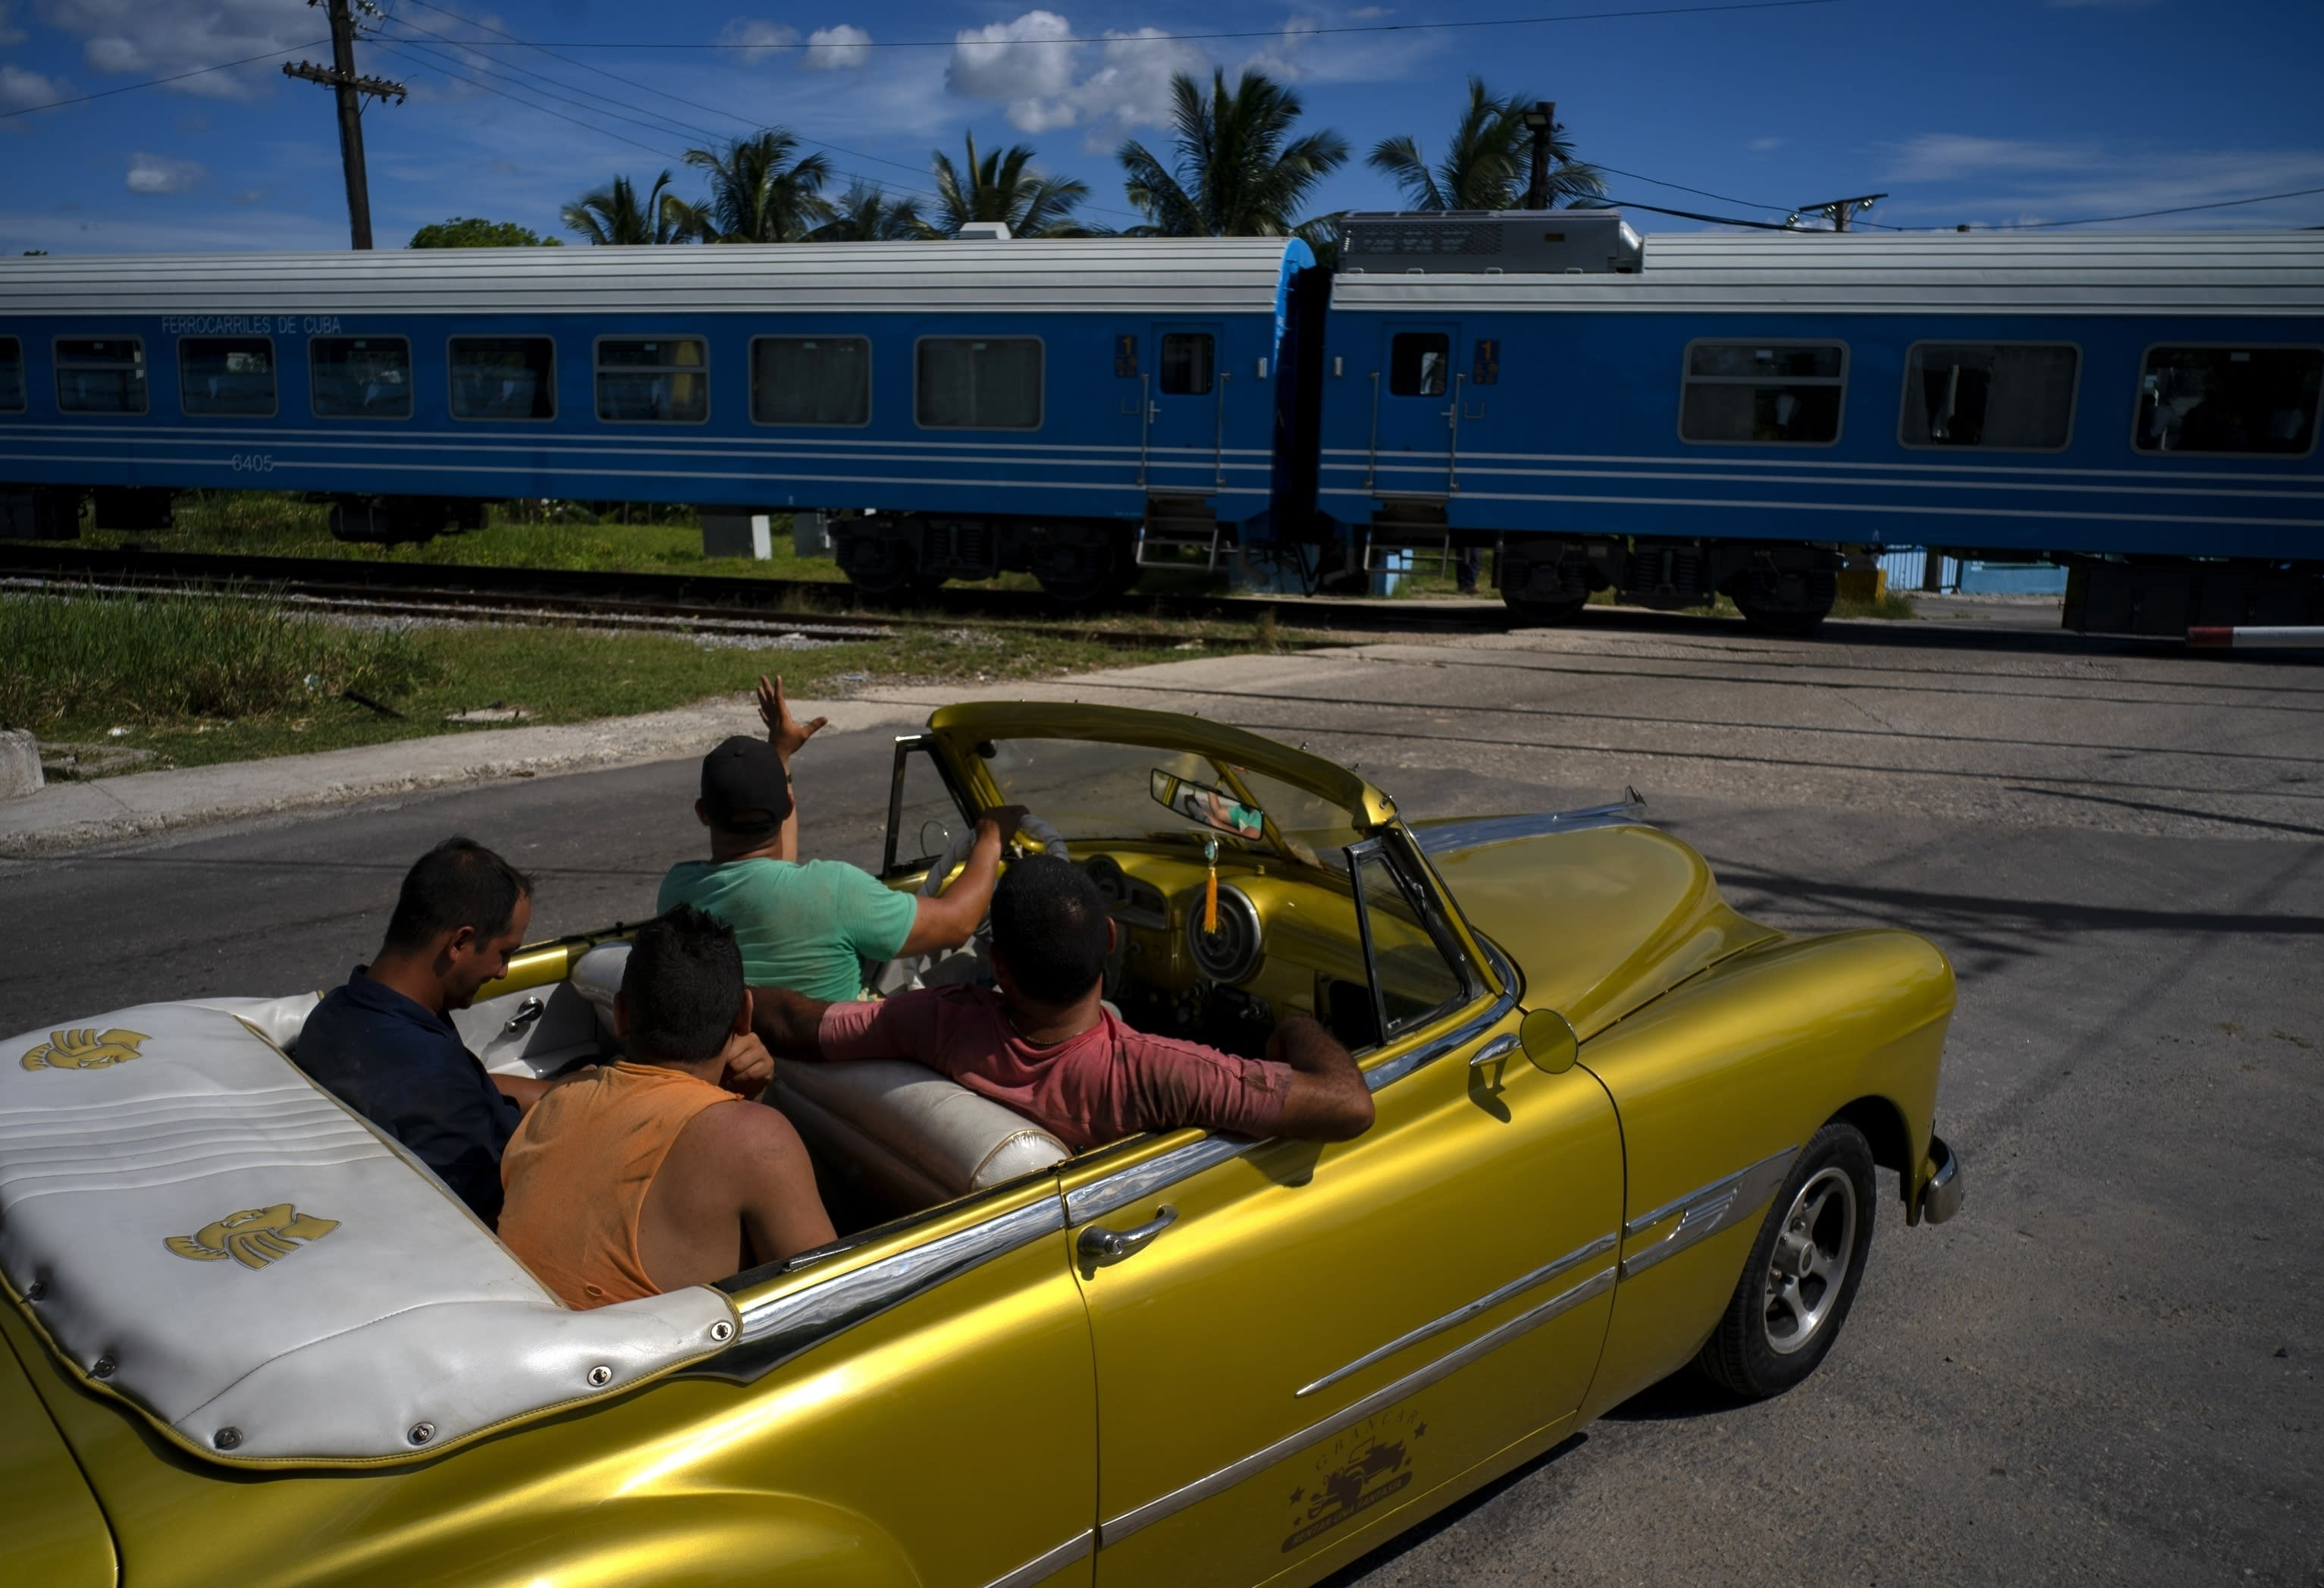 A driver in an American classic car waves as the first train using new equipment from China rides past, in Havana, Cuba, Saturday, July 13, 2019. The first train using new equipment from China pulled out of Havana Saturday, hauling passengers on the start of a 915-kilometer (516-mile) journey to the eastern end of the island as the government tries to overhaul the country's aging and decrepit rail system. (AP Photo/Ramon Espinosa)